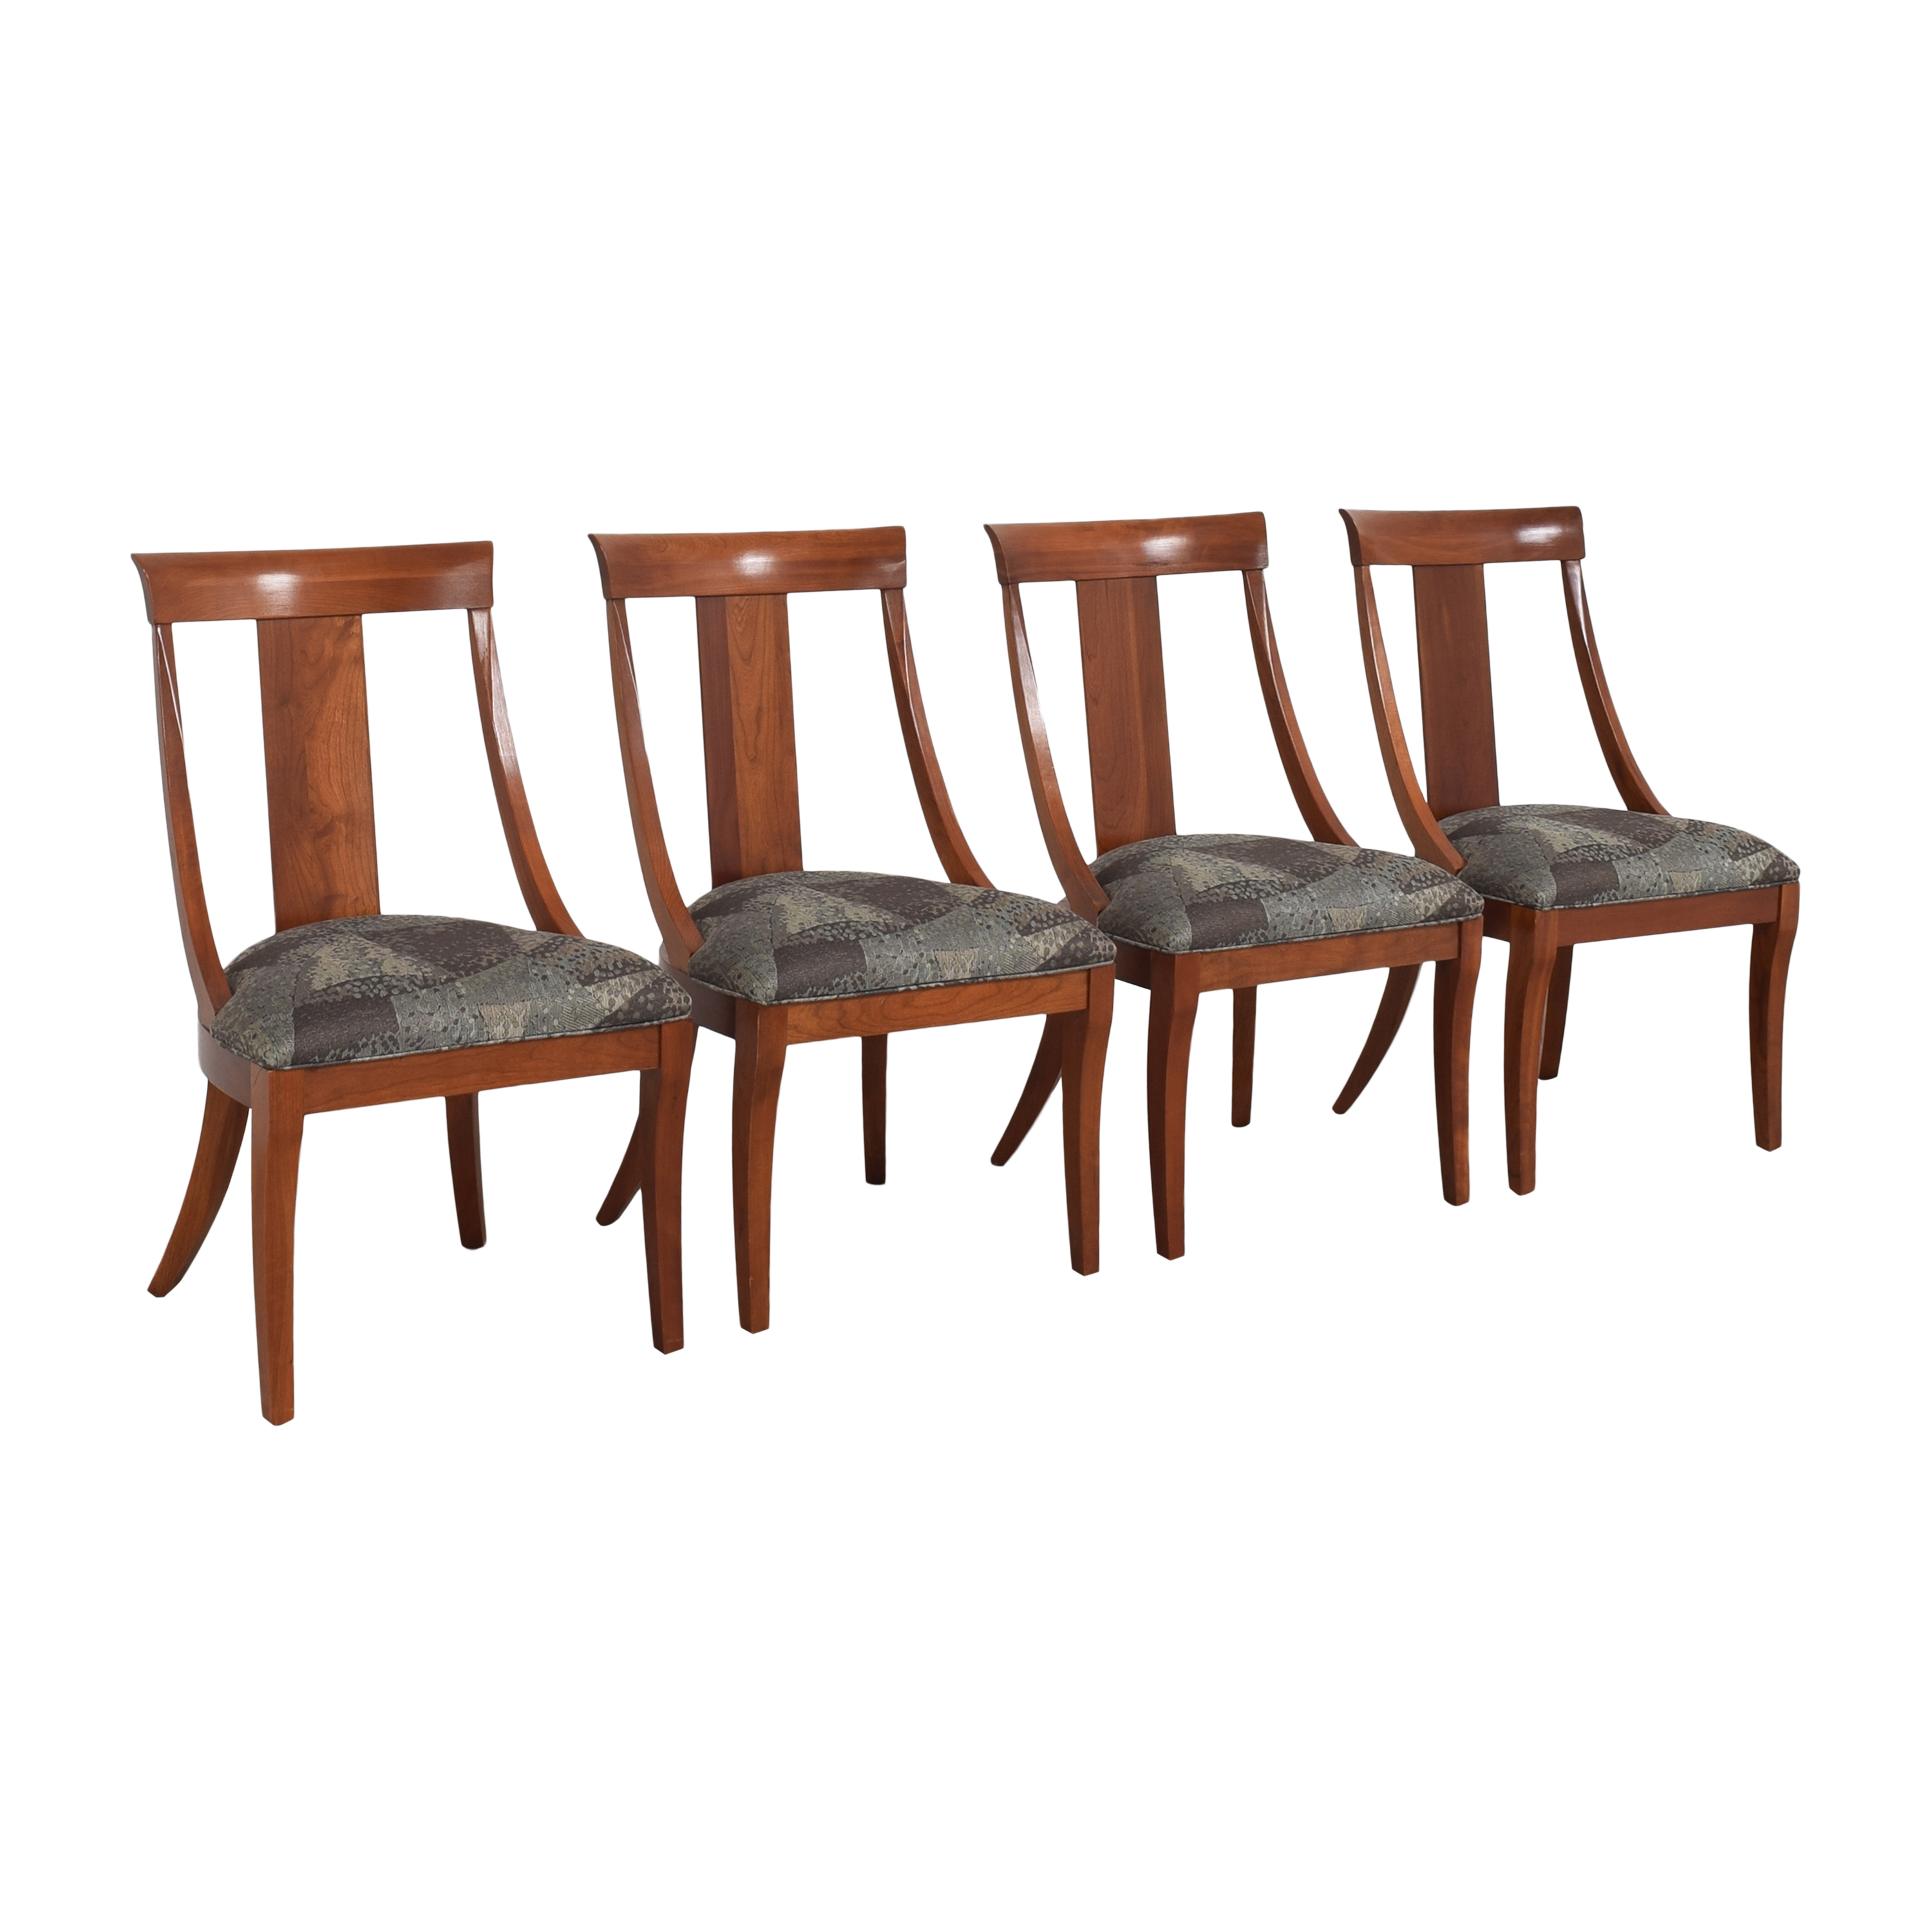 Ethan Allen Ethan Allen Medallion Dining Chairs coupon